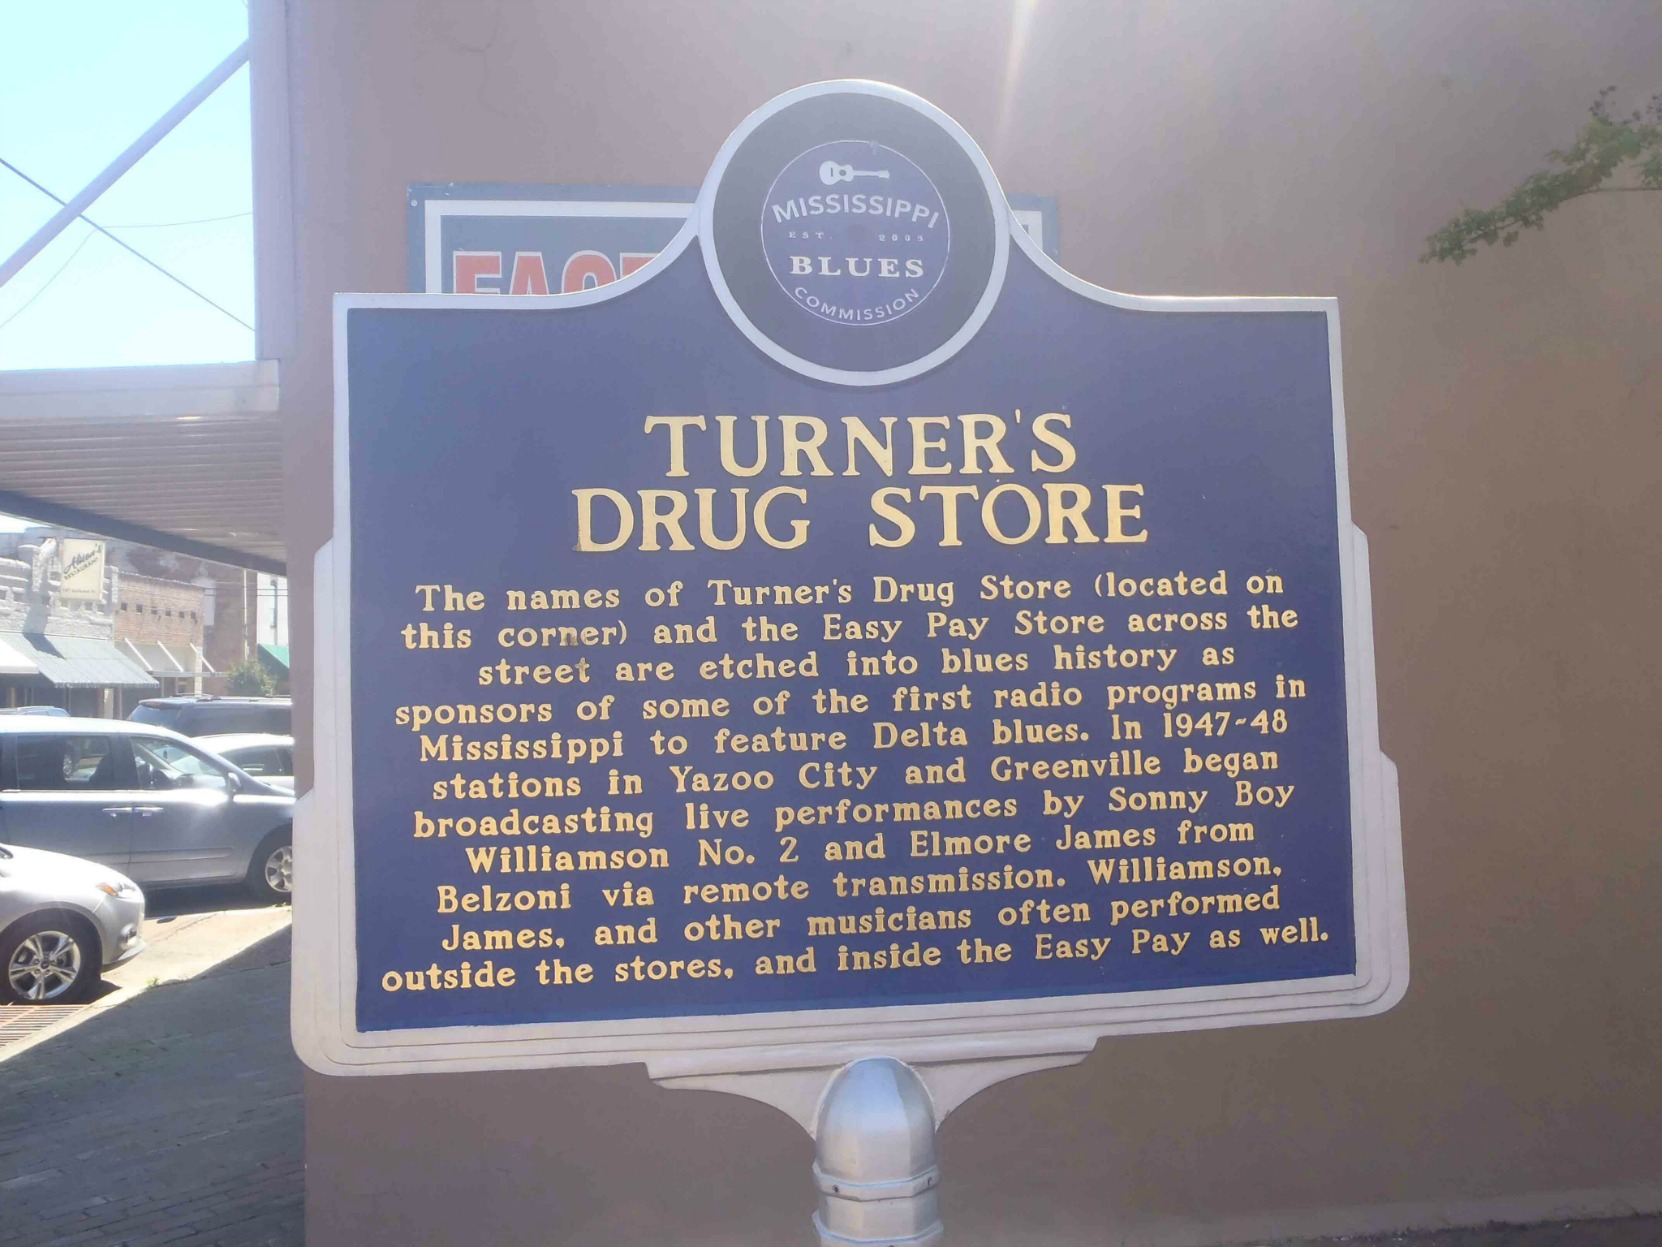 Mississippi Blues Trail marker for Turner's Drug Store, Belzoni, Mississippi